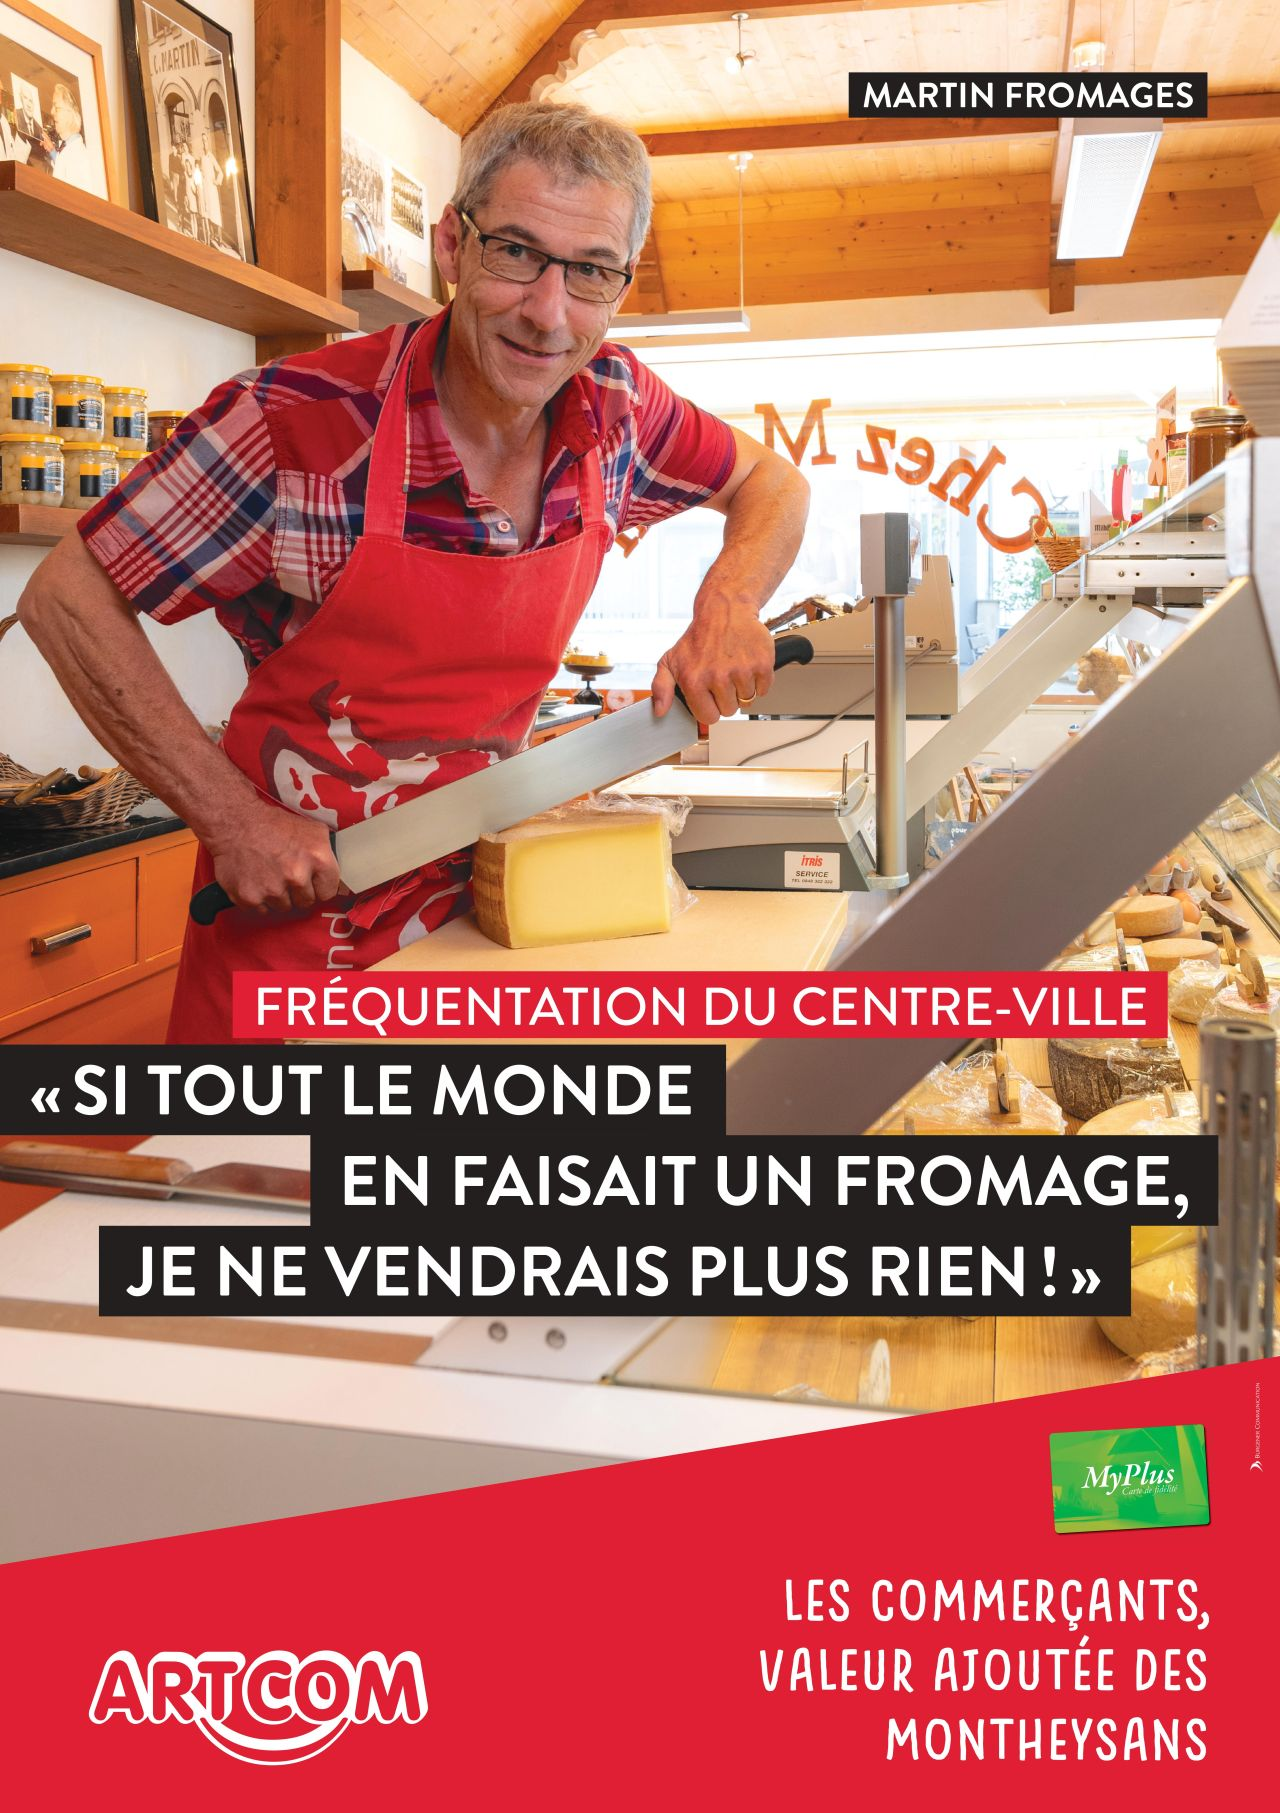 Affiche Martin fromages